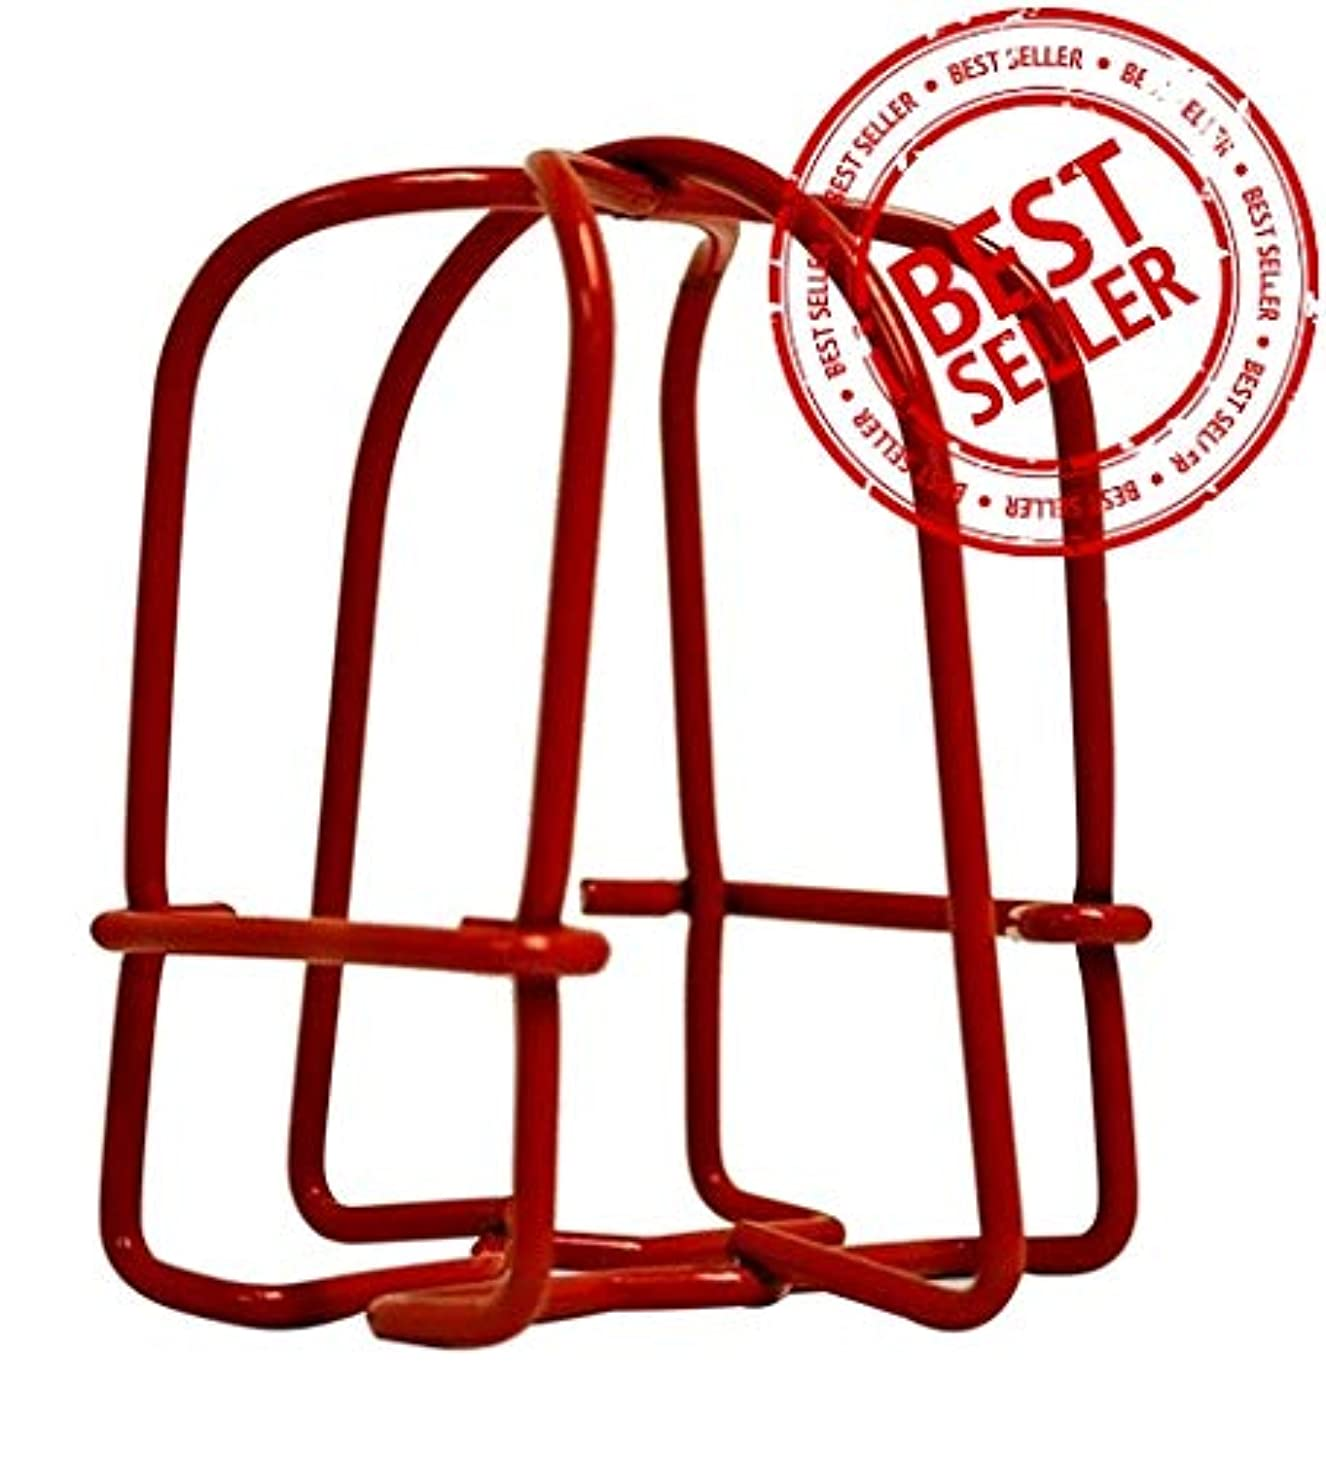 (10 Pack) Greatest Fire Sprinkler Head Guard Red Plated Easy Screw Cover Guard for 1/2'' IPS Pendent & Upright & Horizontal Sidewall Head - Double Hook